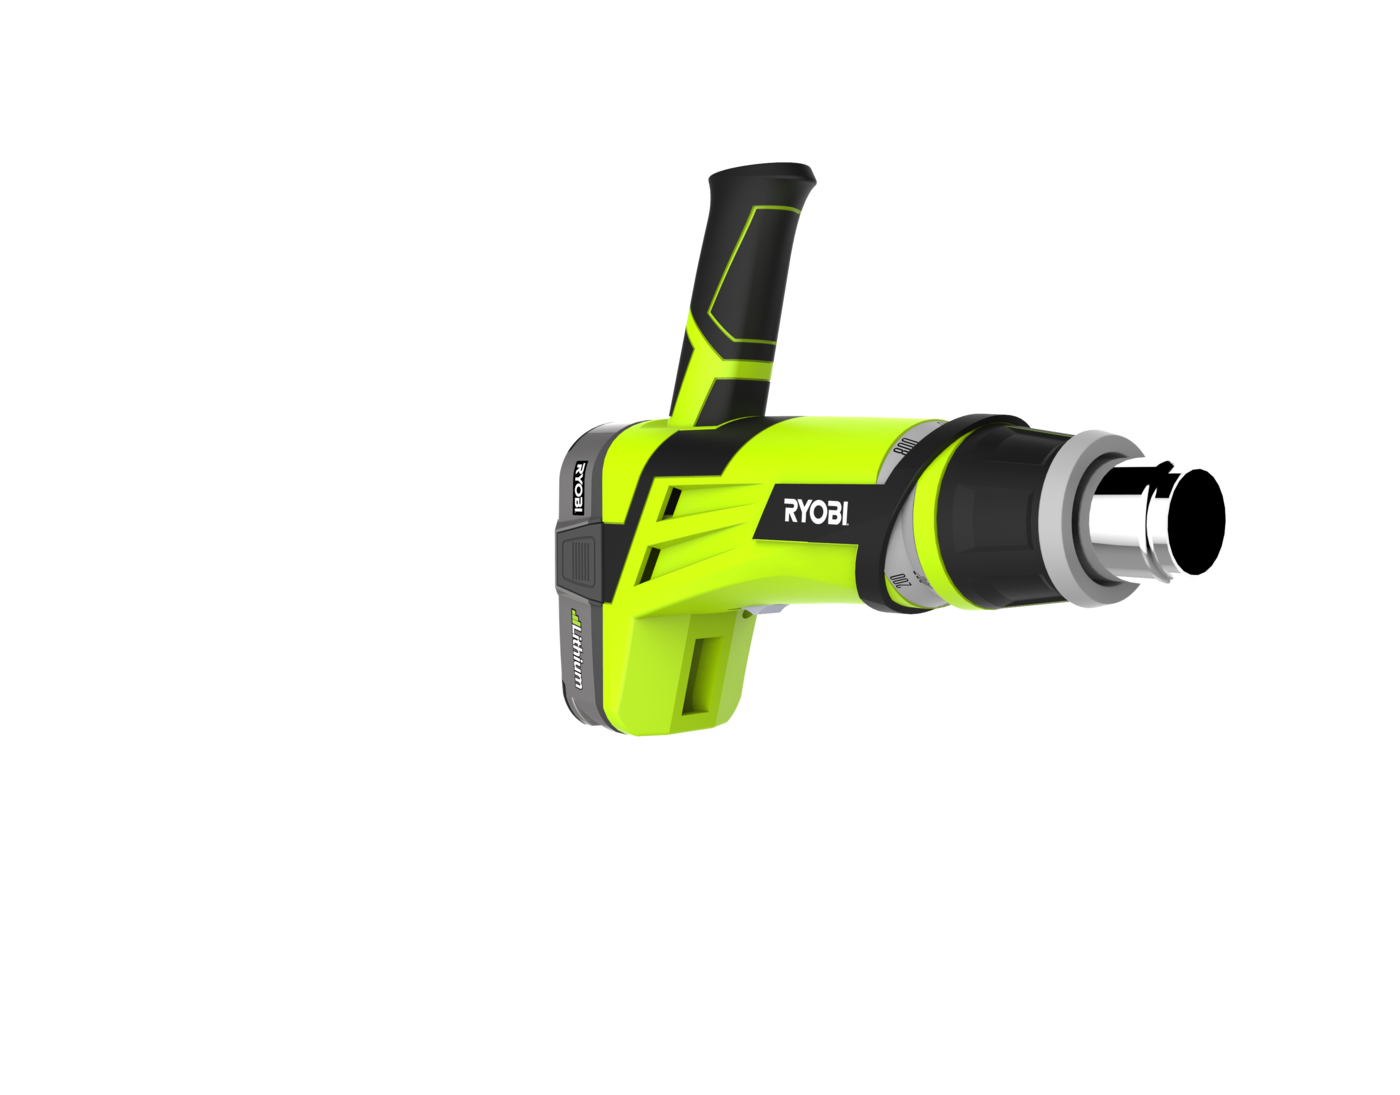 Pin On Heat Gun Ryobi